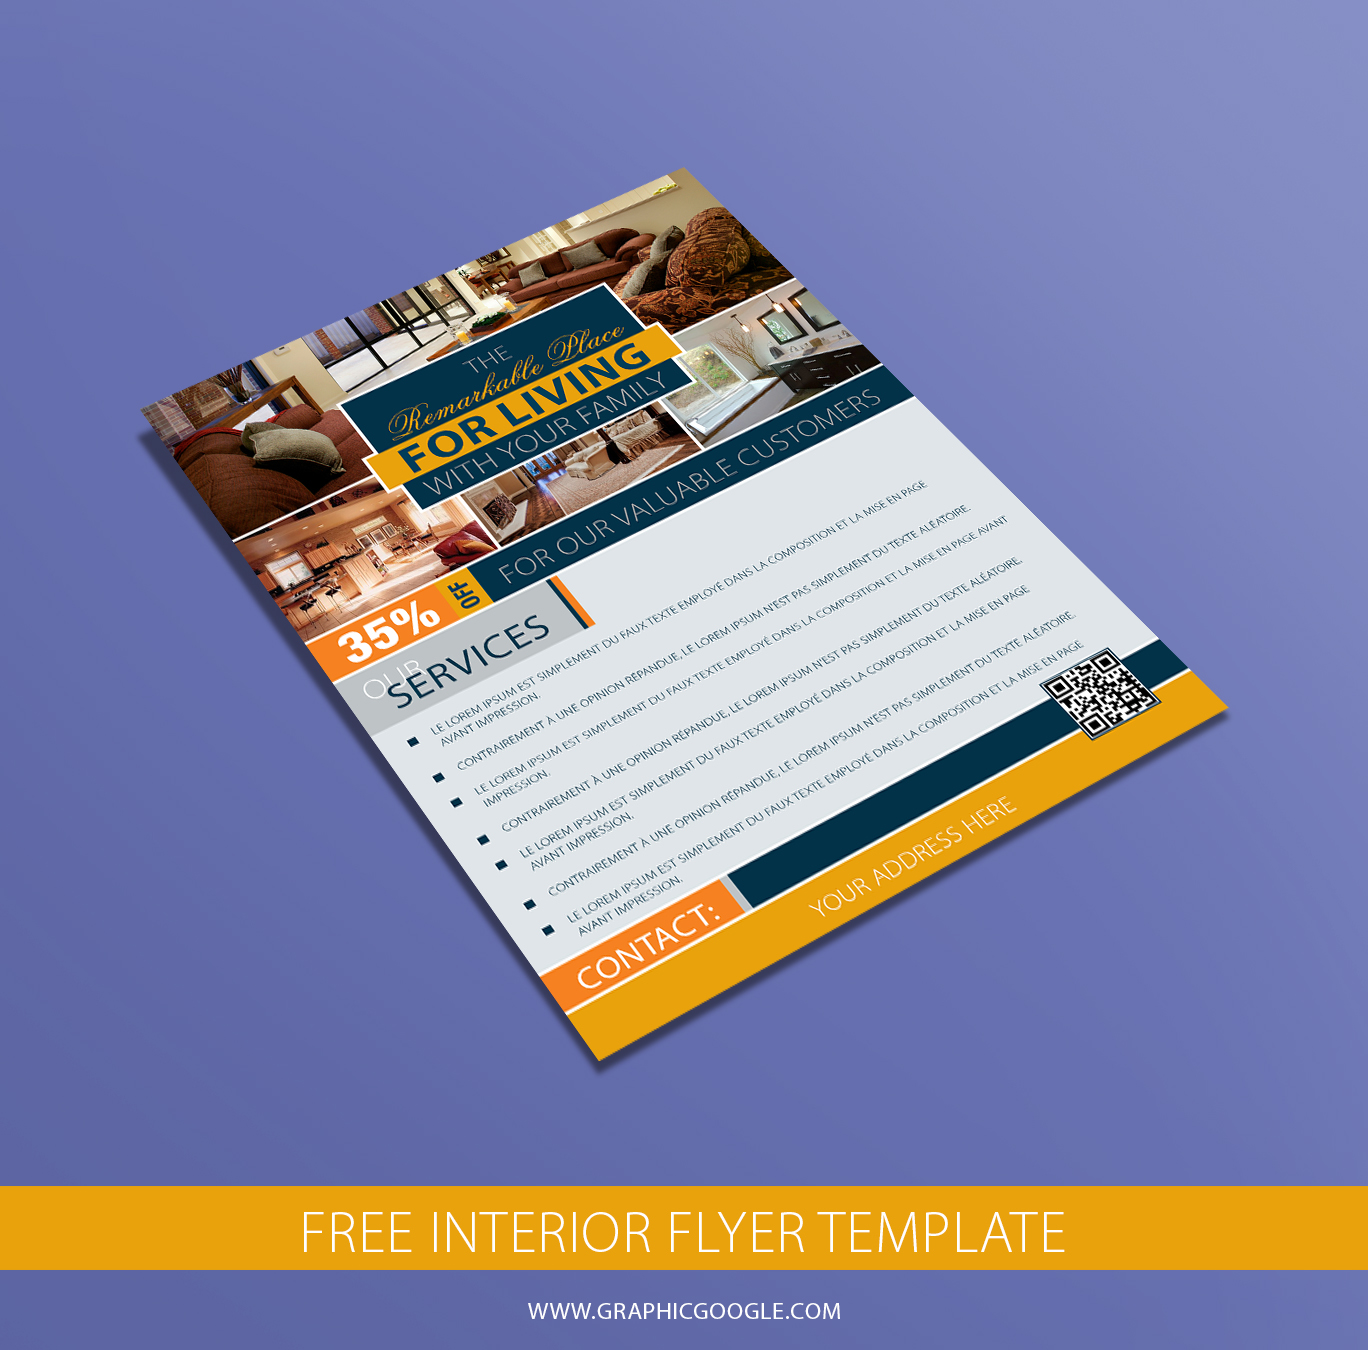 Free Interior Flyer Template